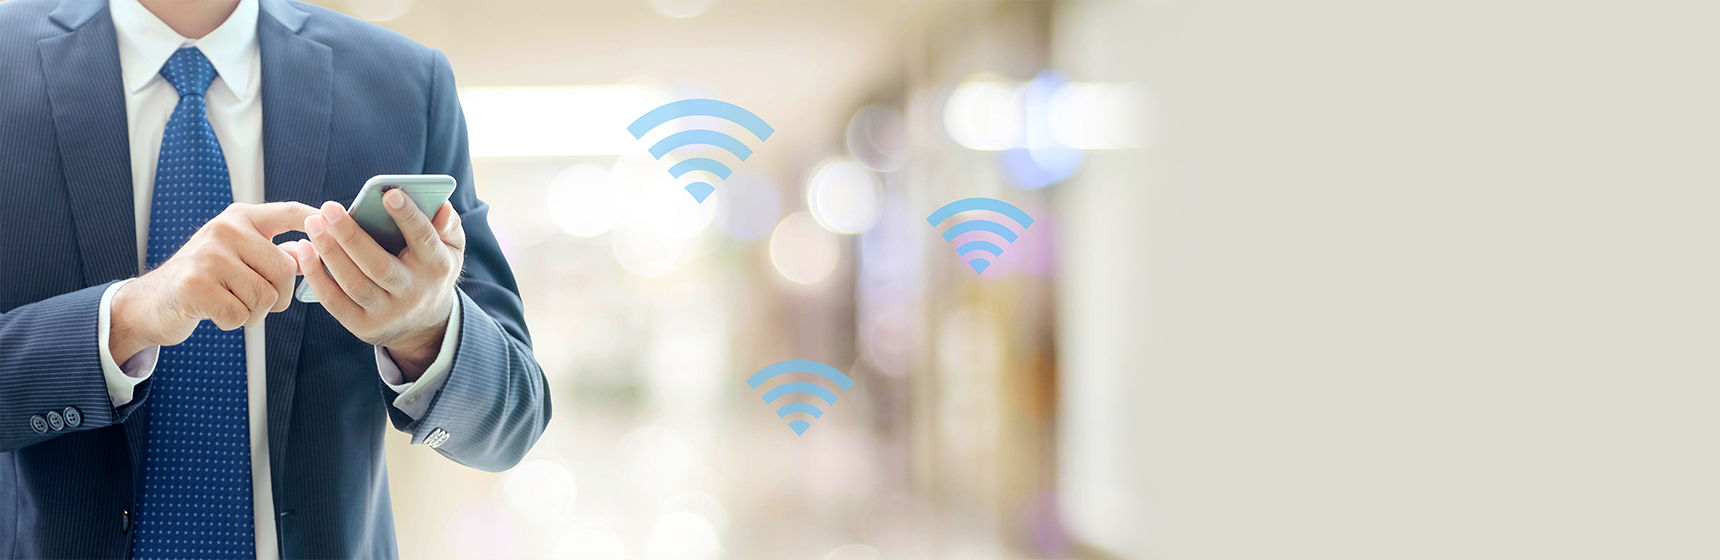 campus wifi solutions